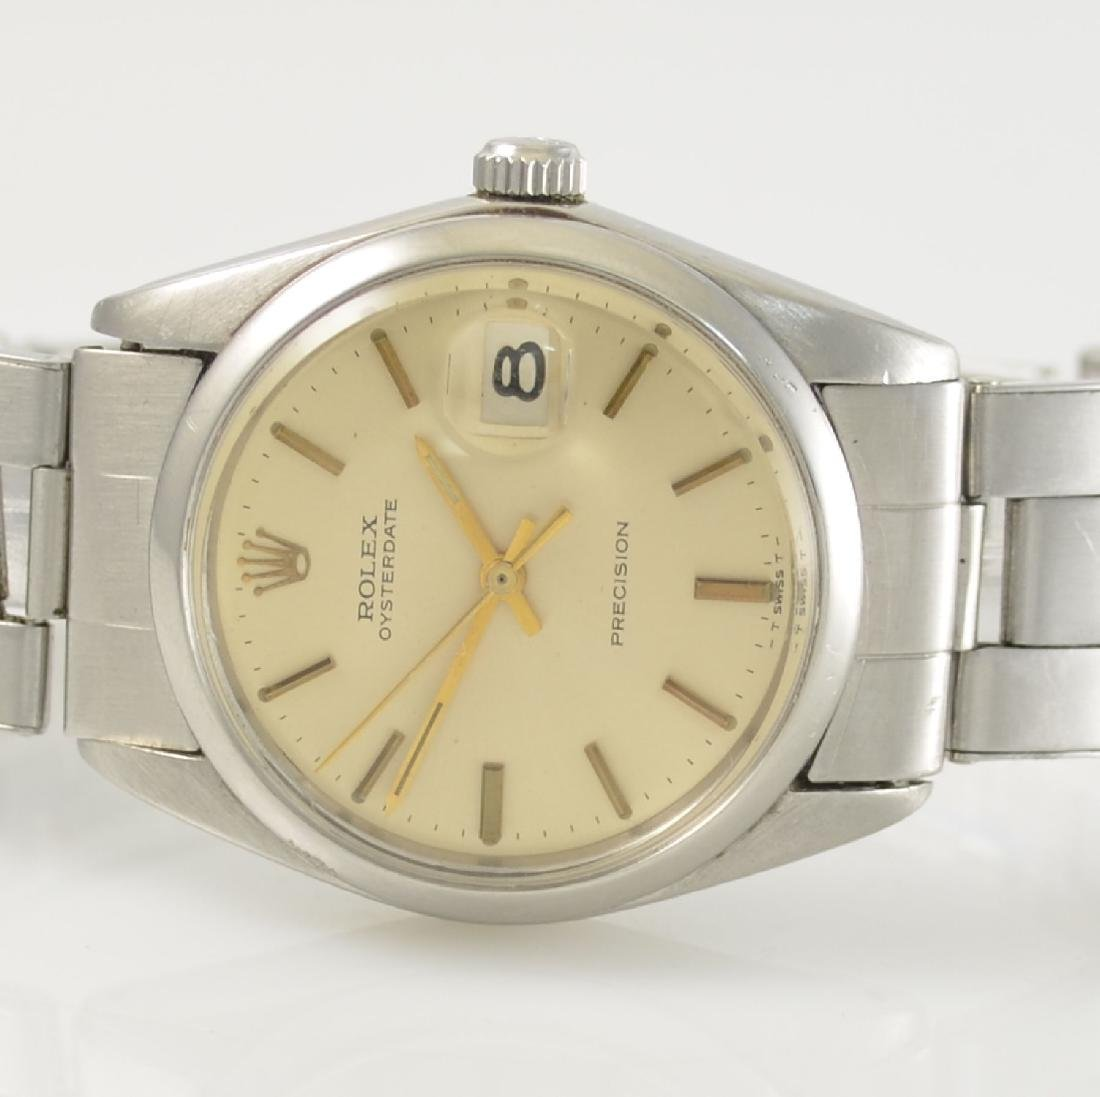 ROLEX Precision reference 6694 gents wristwatch - 2